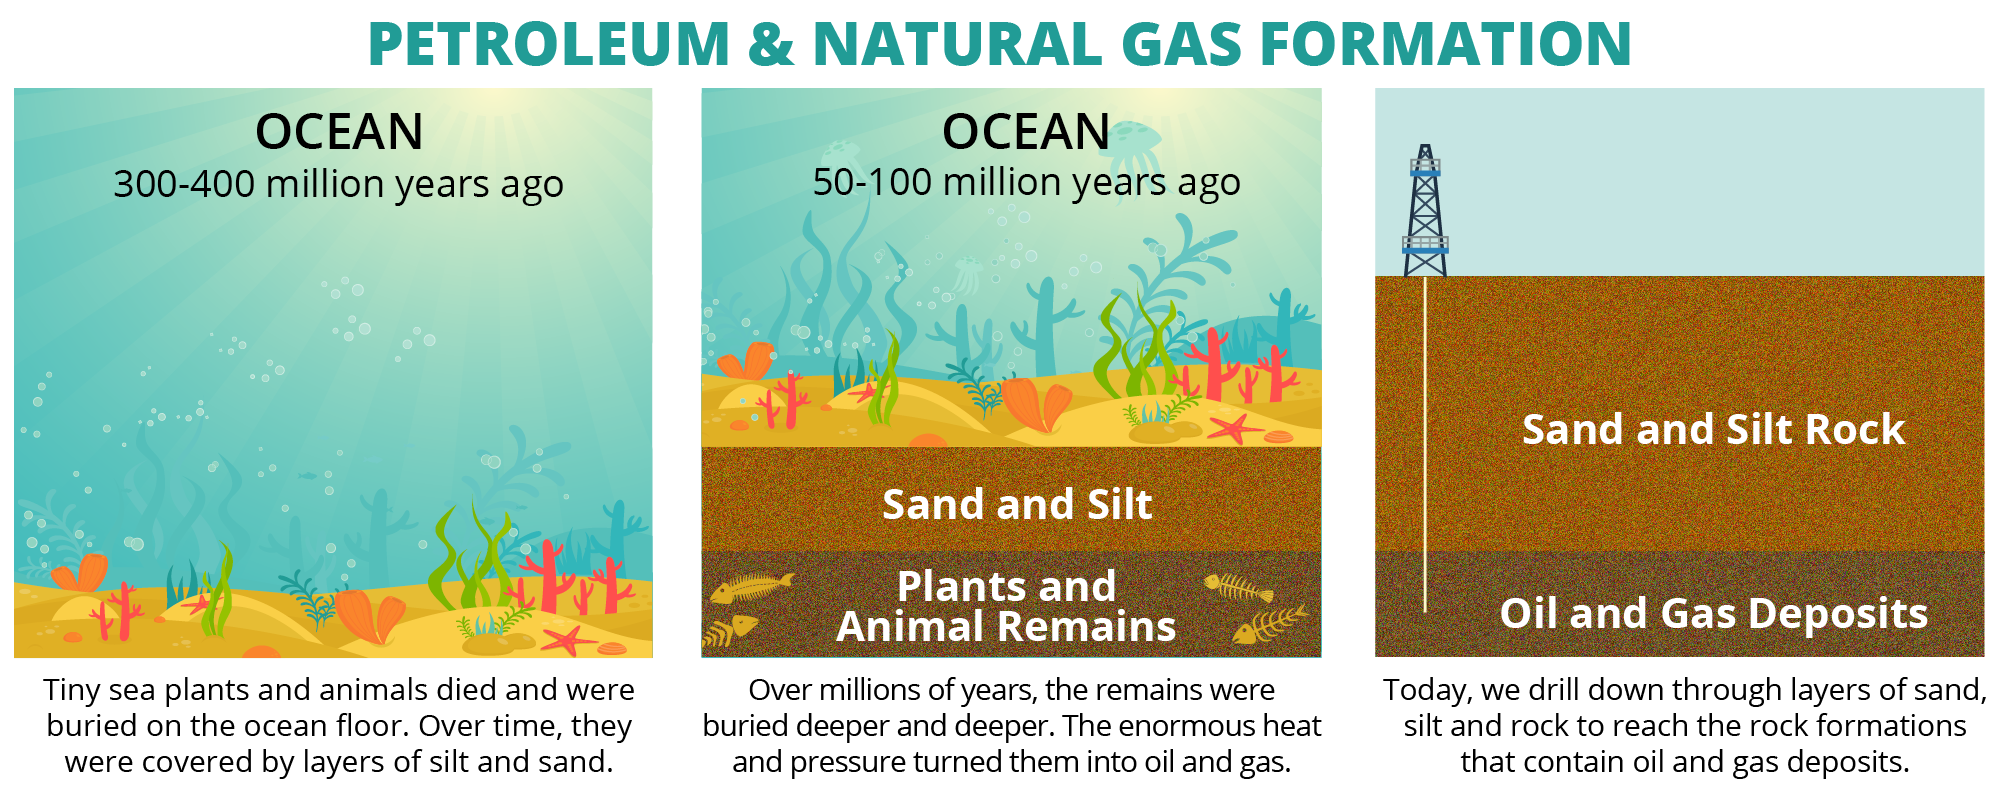 Middle School Students | How is Natural Gas Produced | Safe and Smart